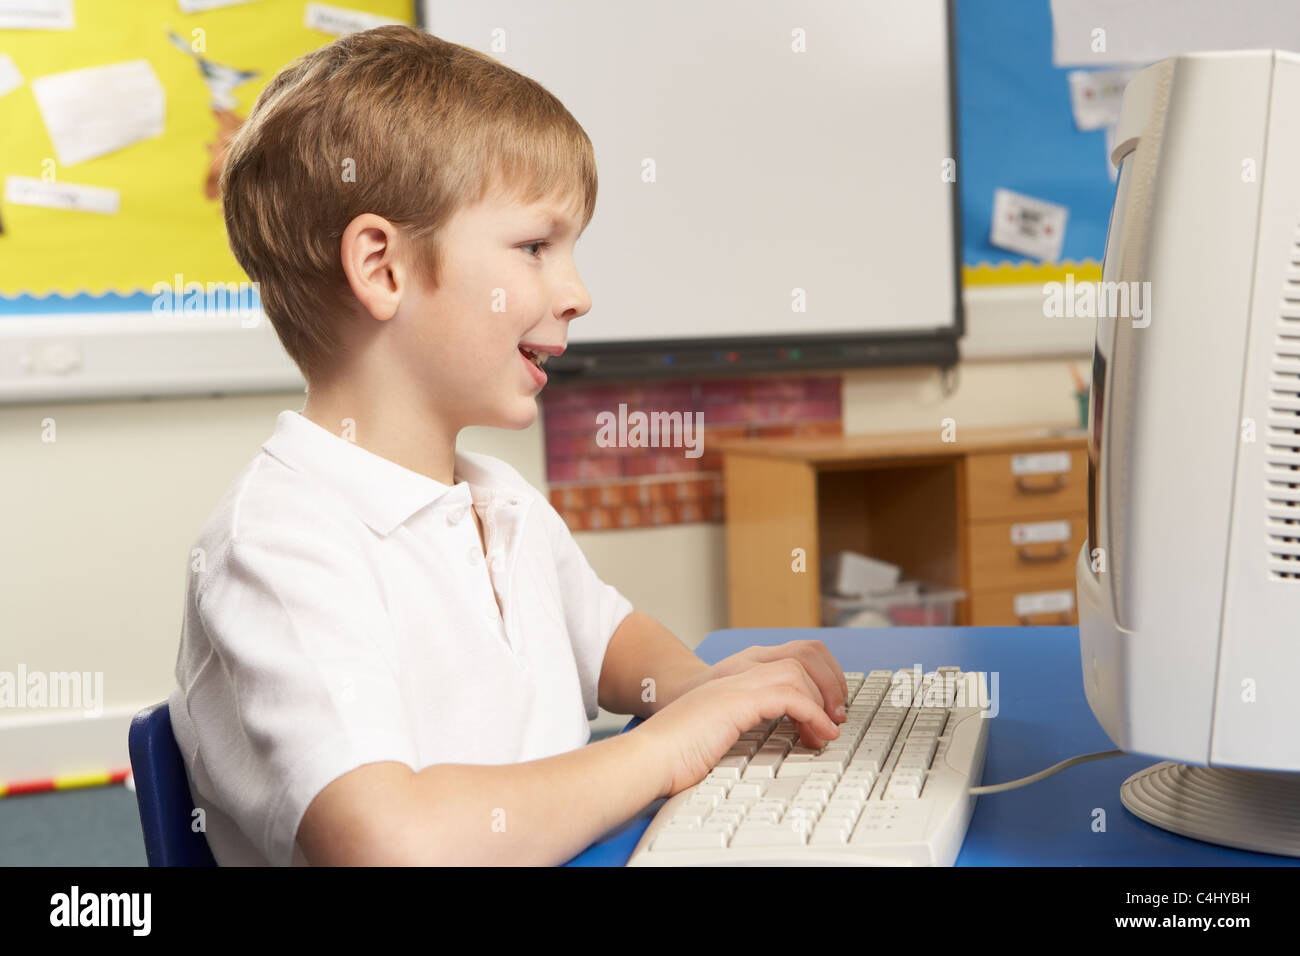 Schoolboy In IT Class Using Computer - Stock Image